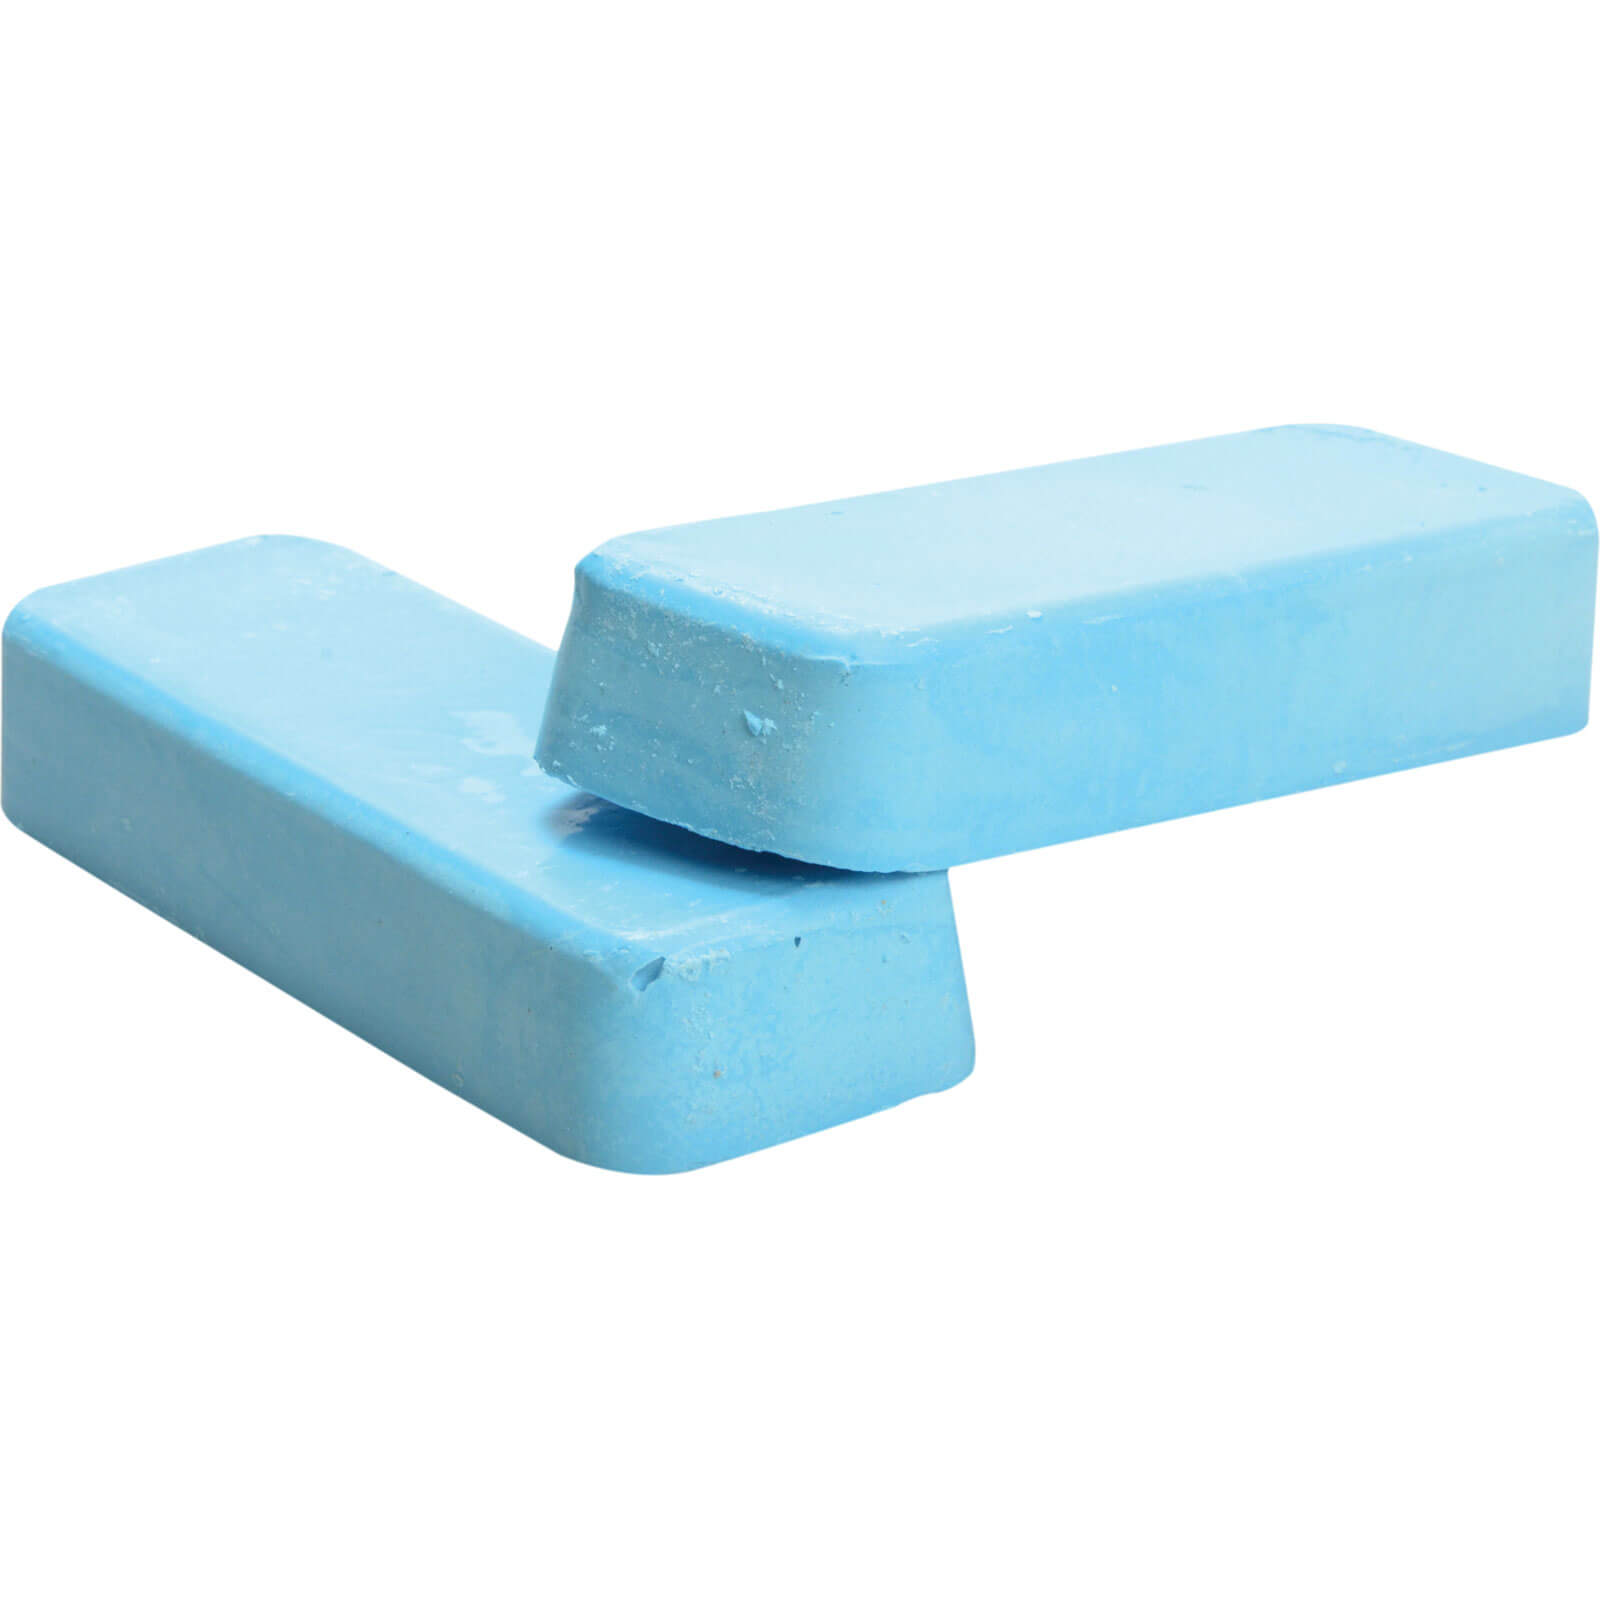 Image of Zenith Profin Blumax Polishing Bars Blue Pack of 2